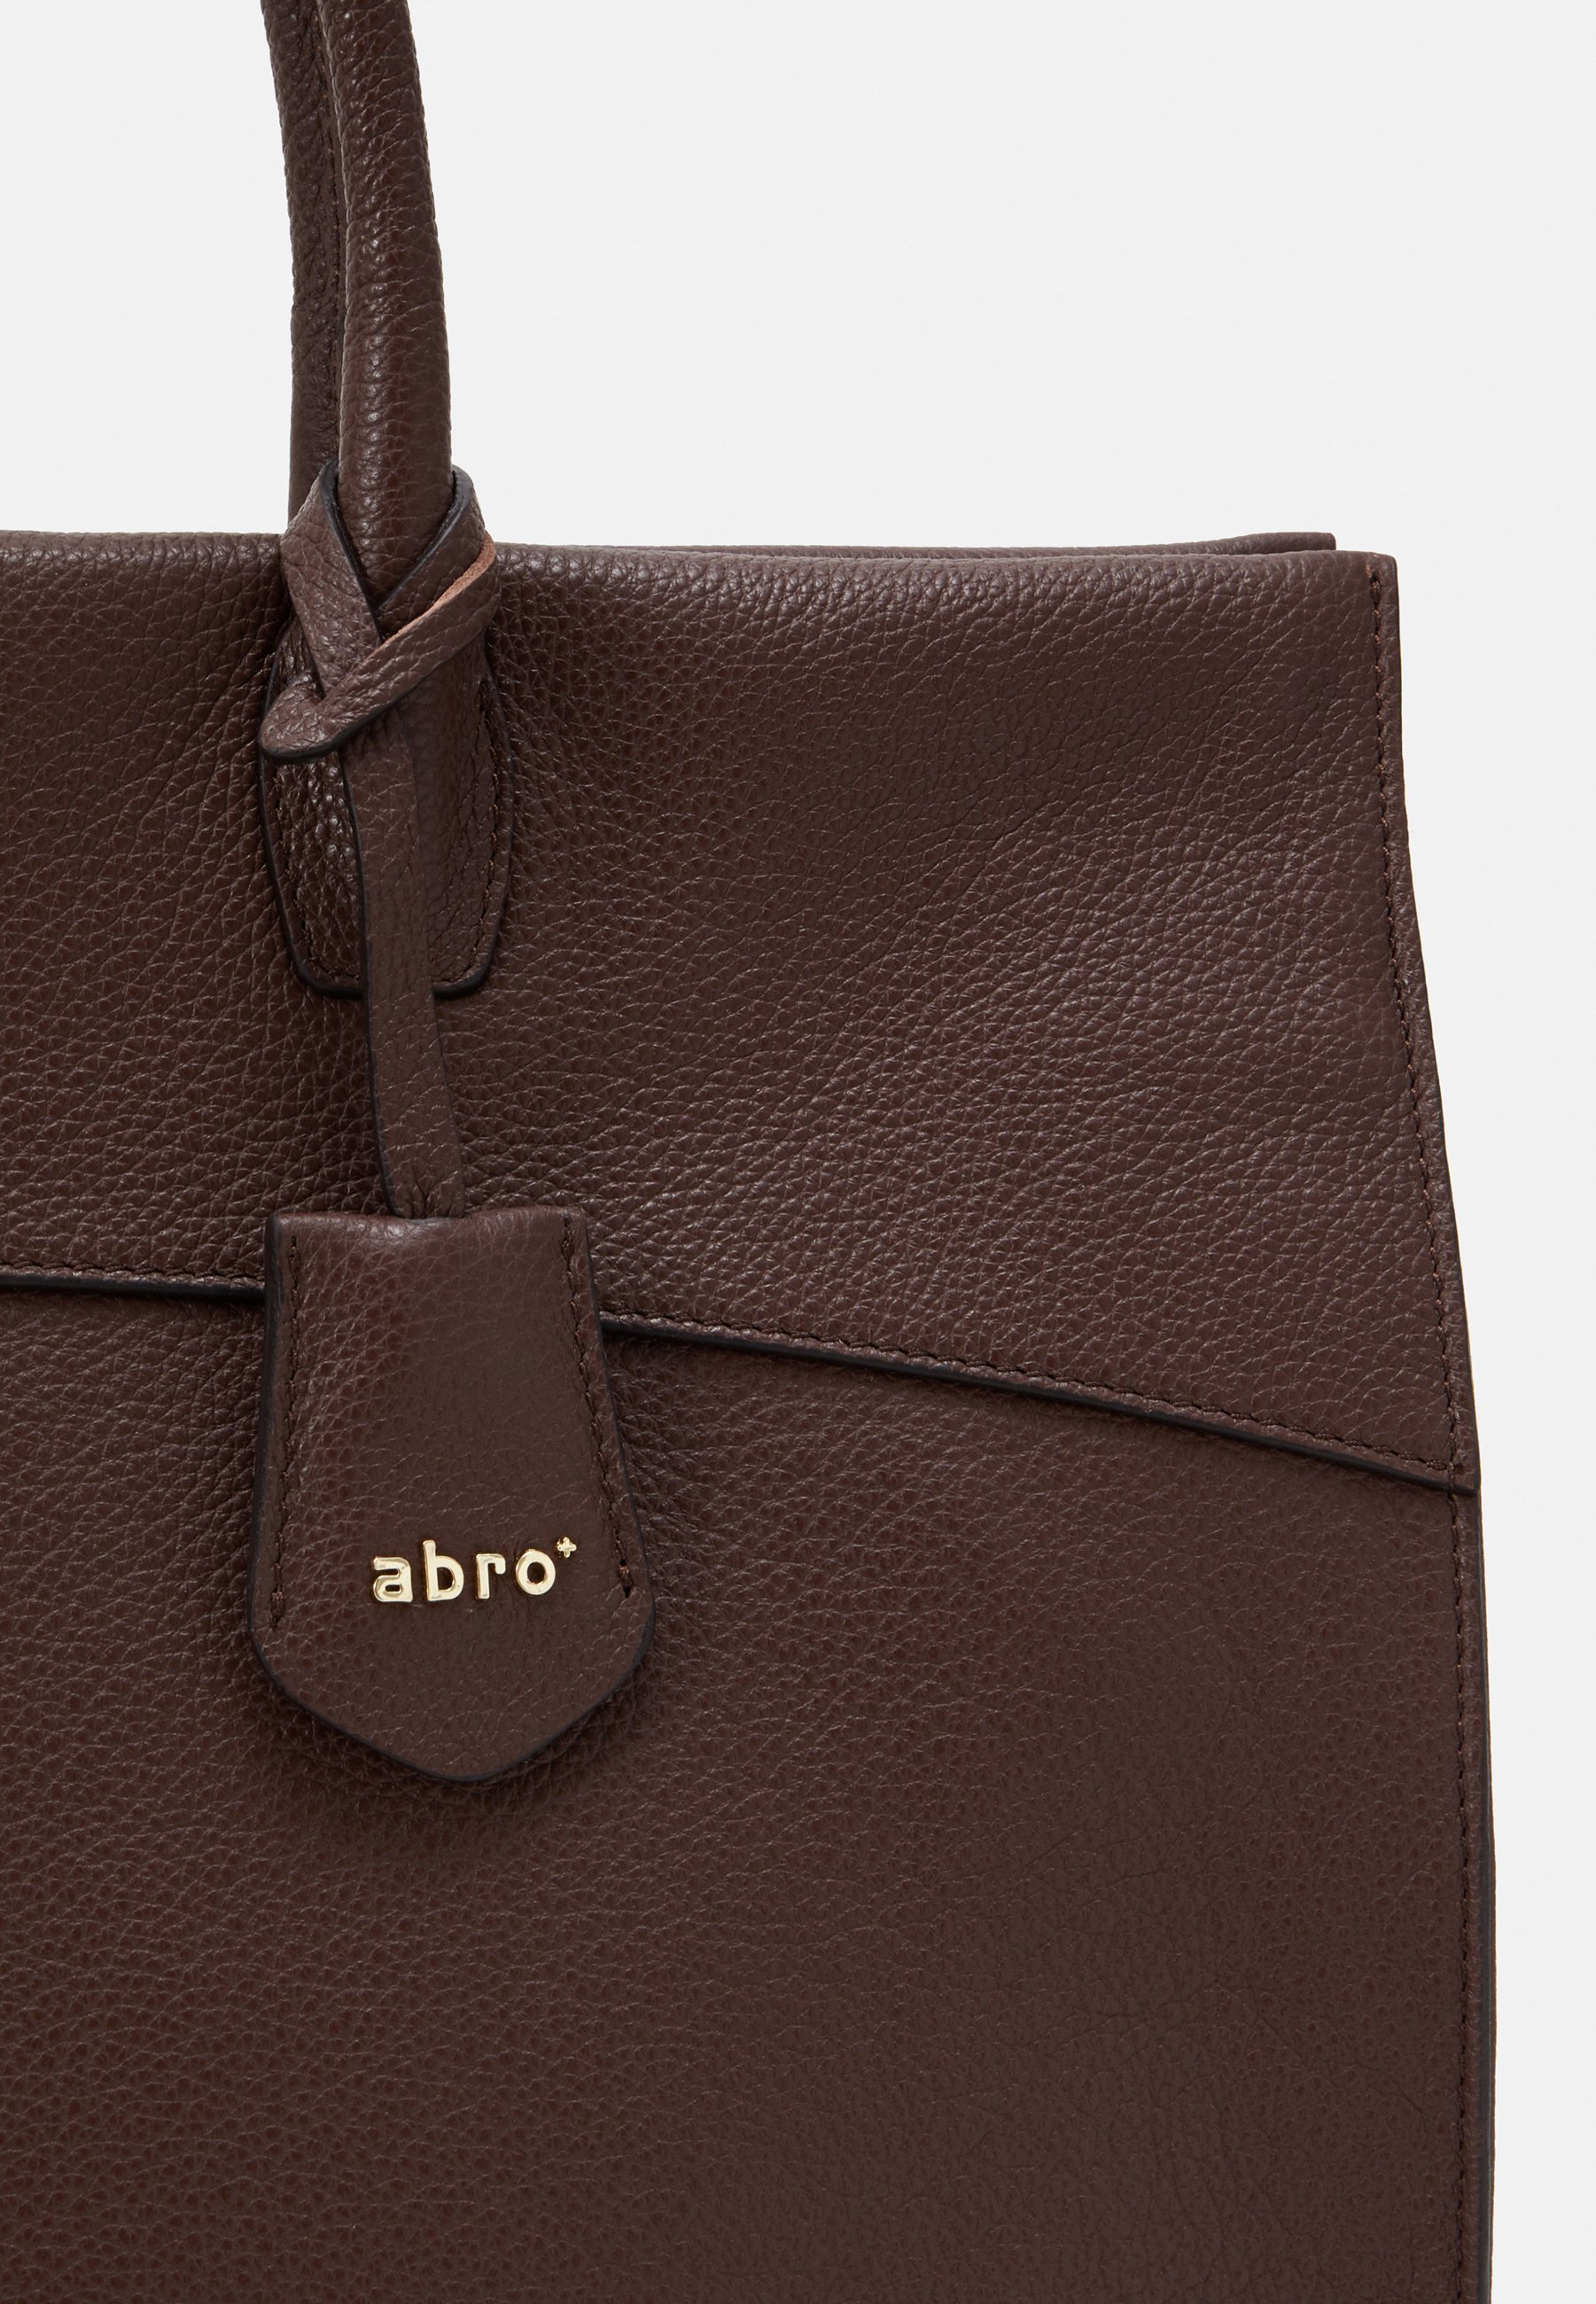 Abro Nora - Torebka Dark Brown